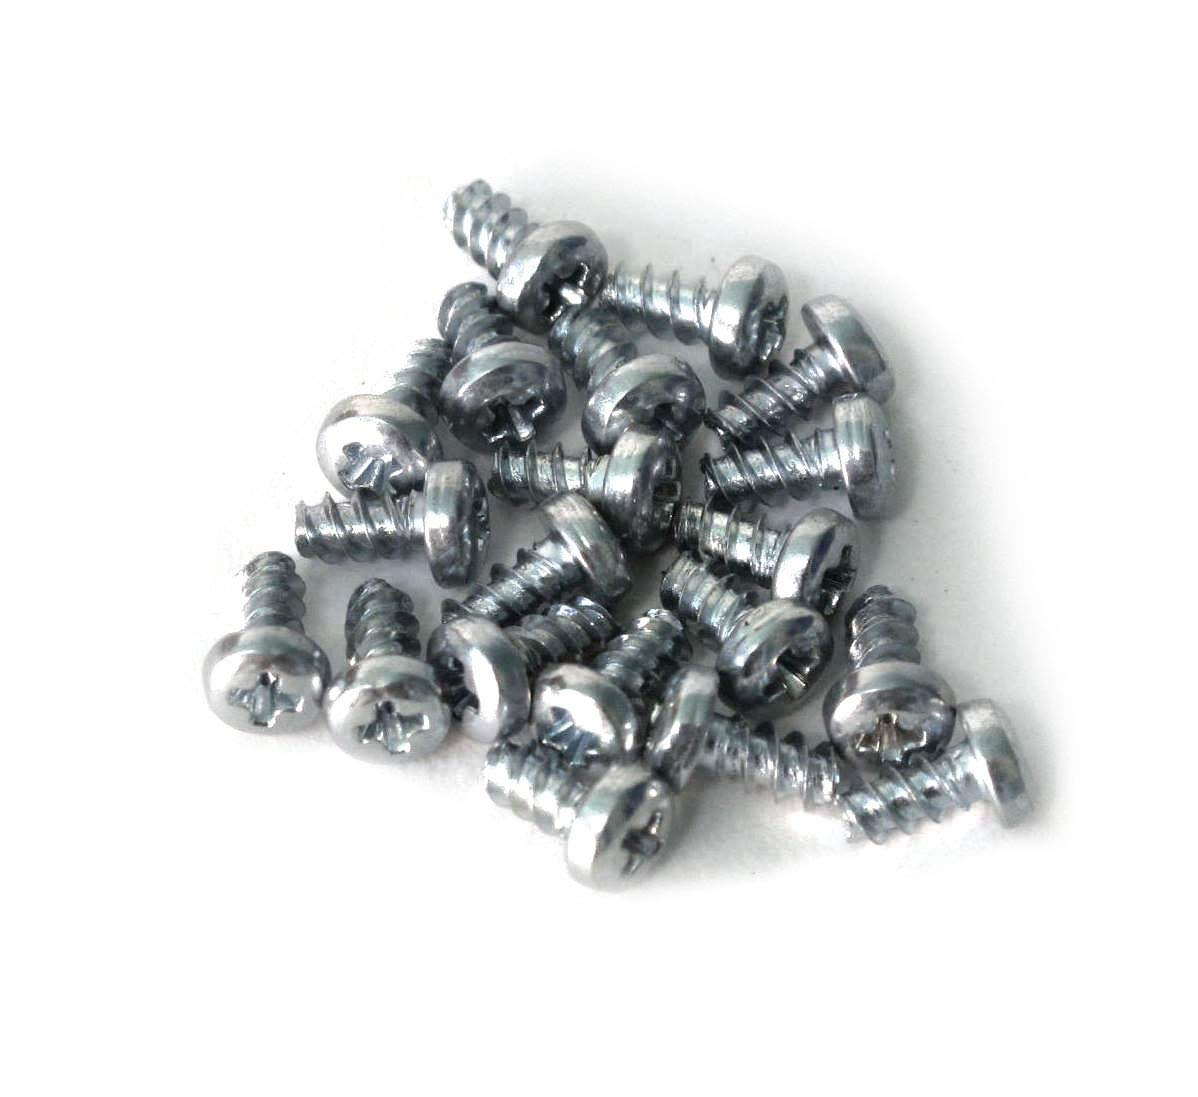 0.125 Long Thread Forming Diameter 6.0 mm 6.0 mm Pan Head Phillips 0.25 Plastite Alternative Long Thread Forming 3.0 mm 0.125 302HQ Stainless Steel M3 PB Screw Diameter 100 pcs 302 Stainless Steel Silver 3.0 mm 0.25 J/&J Products